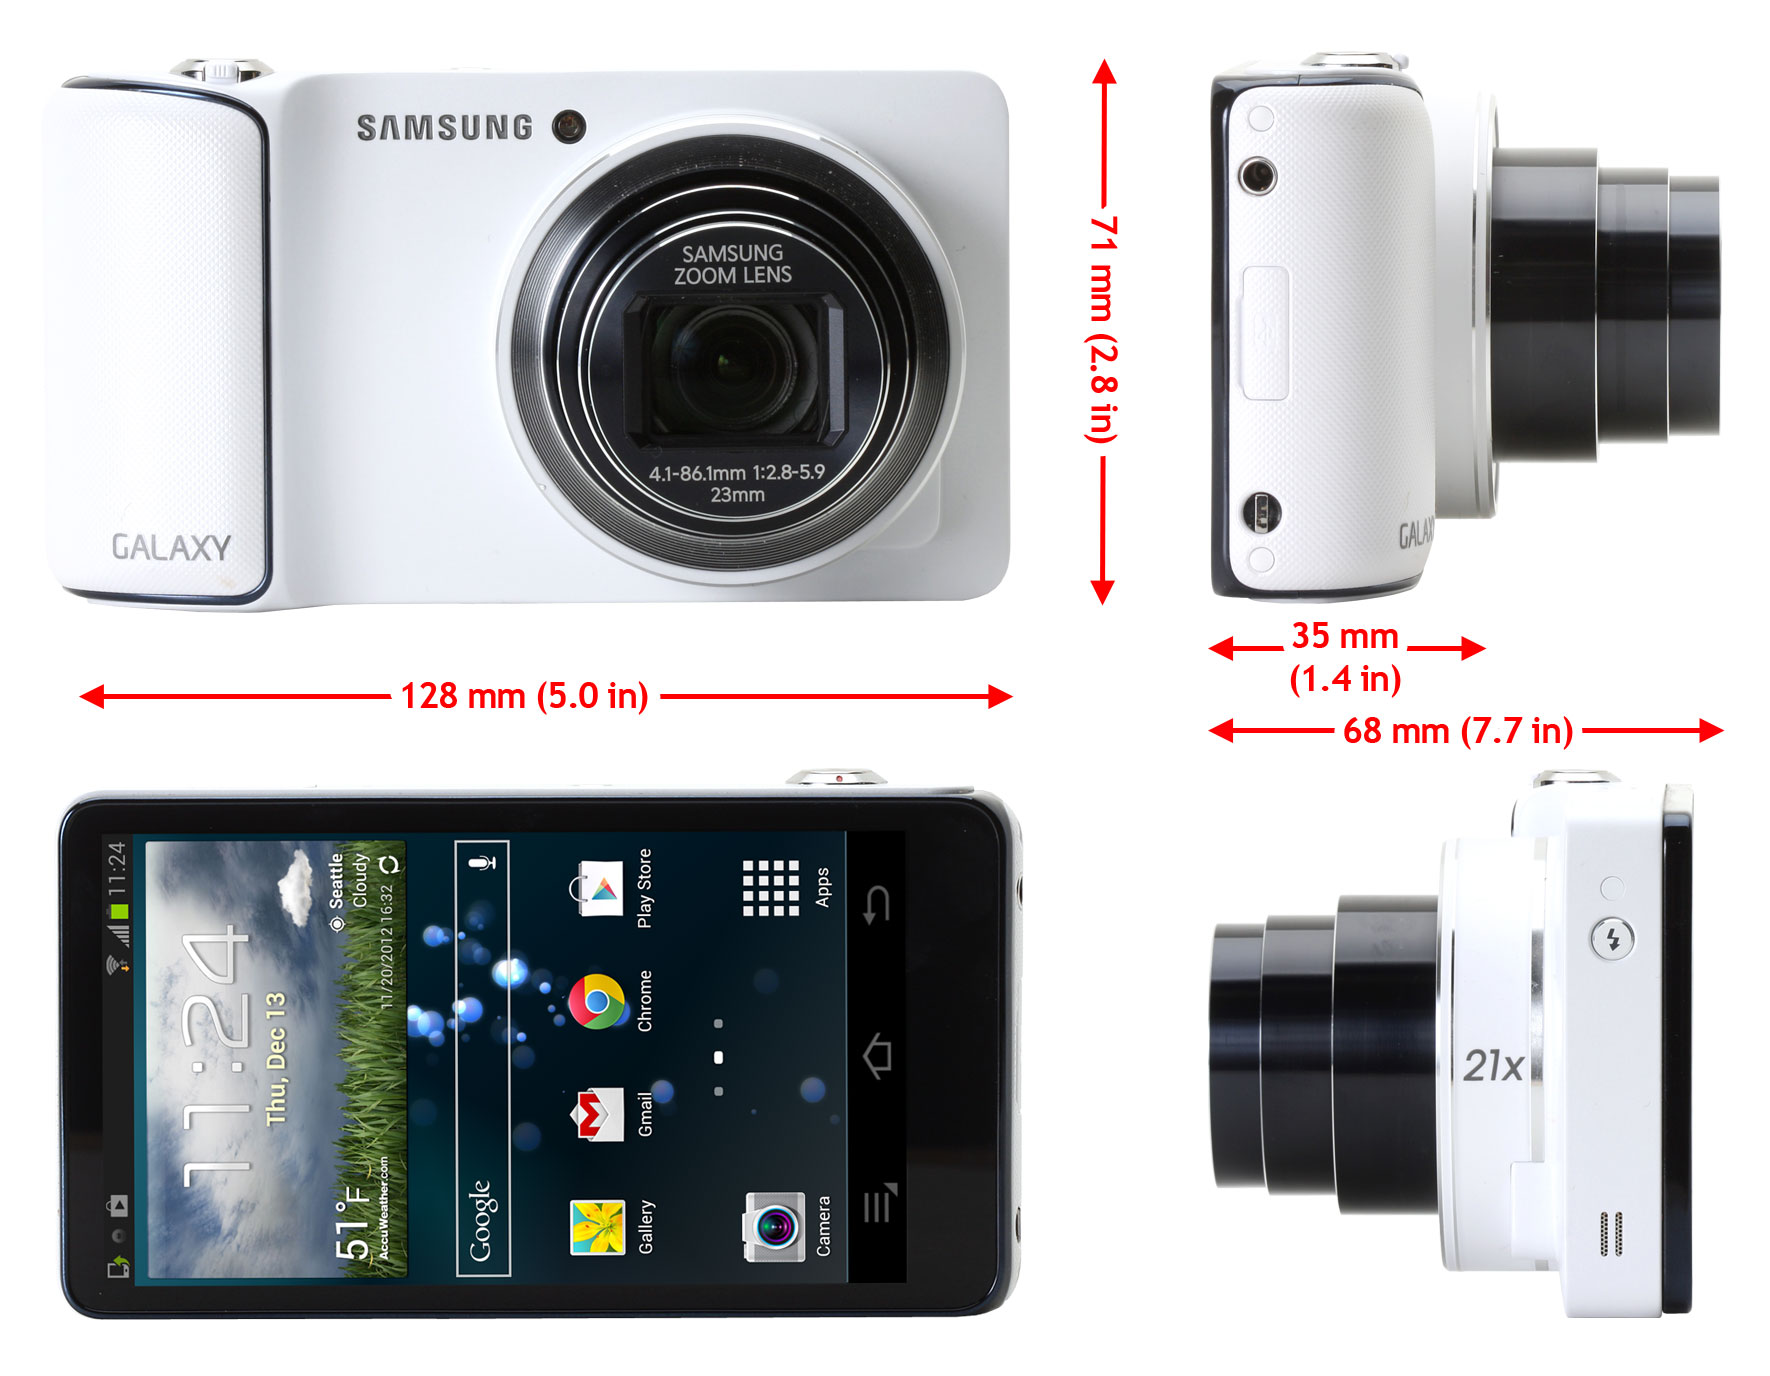 Samsung Galaxy Camera in-depth review: Digital Photography Review